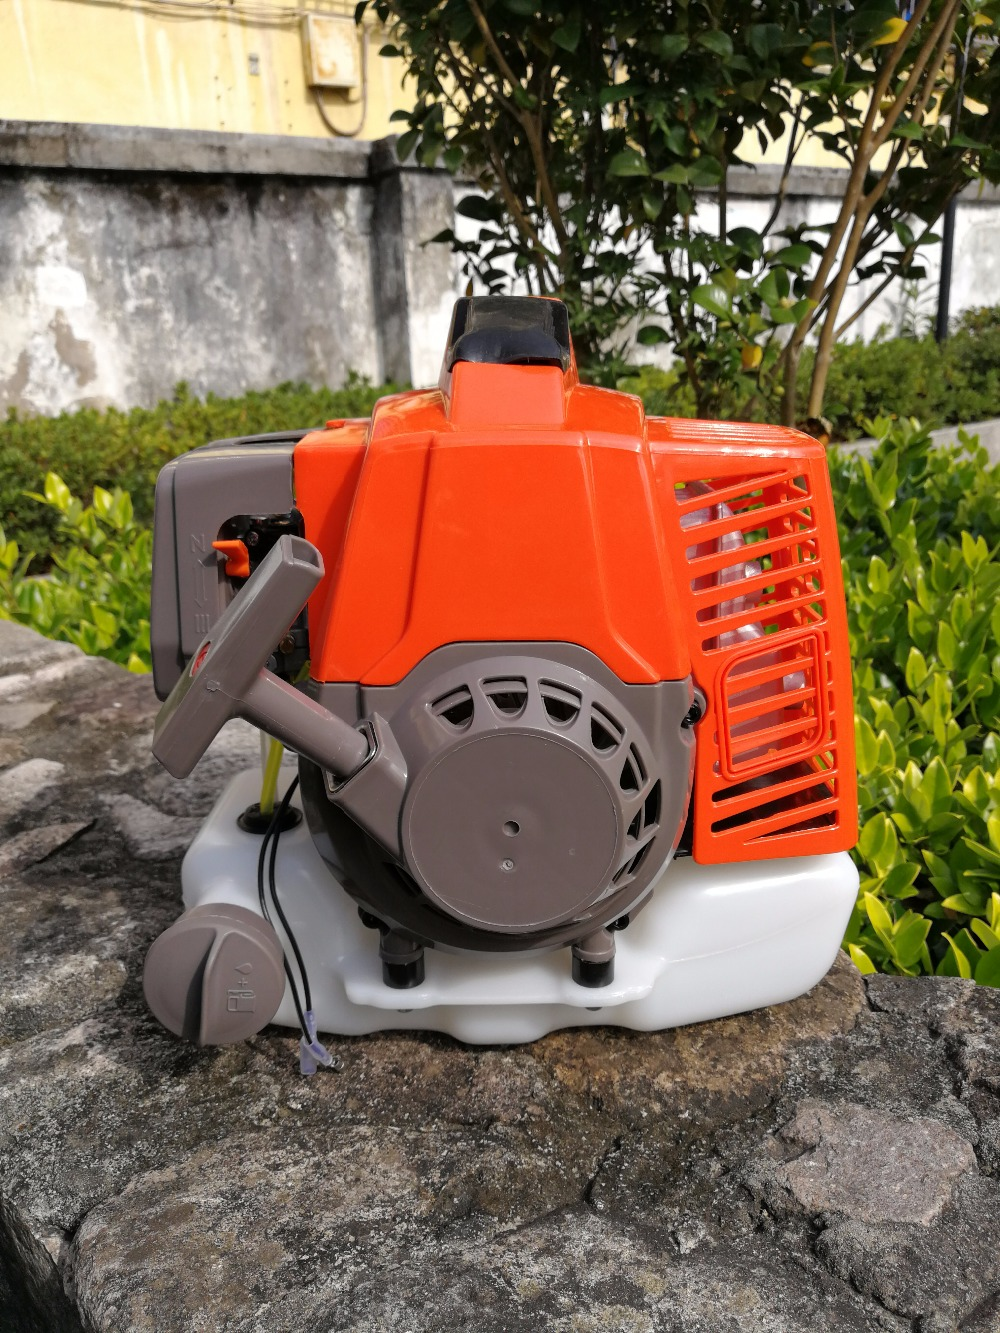 MANUAL STARTER 2T 63CC powerful gasoline engine petrol motor for grass trimmer brush cutter earth drill